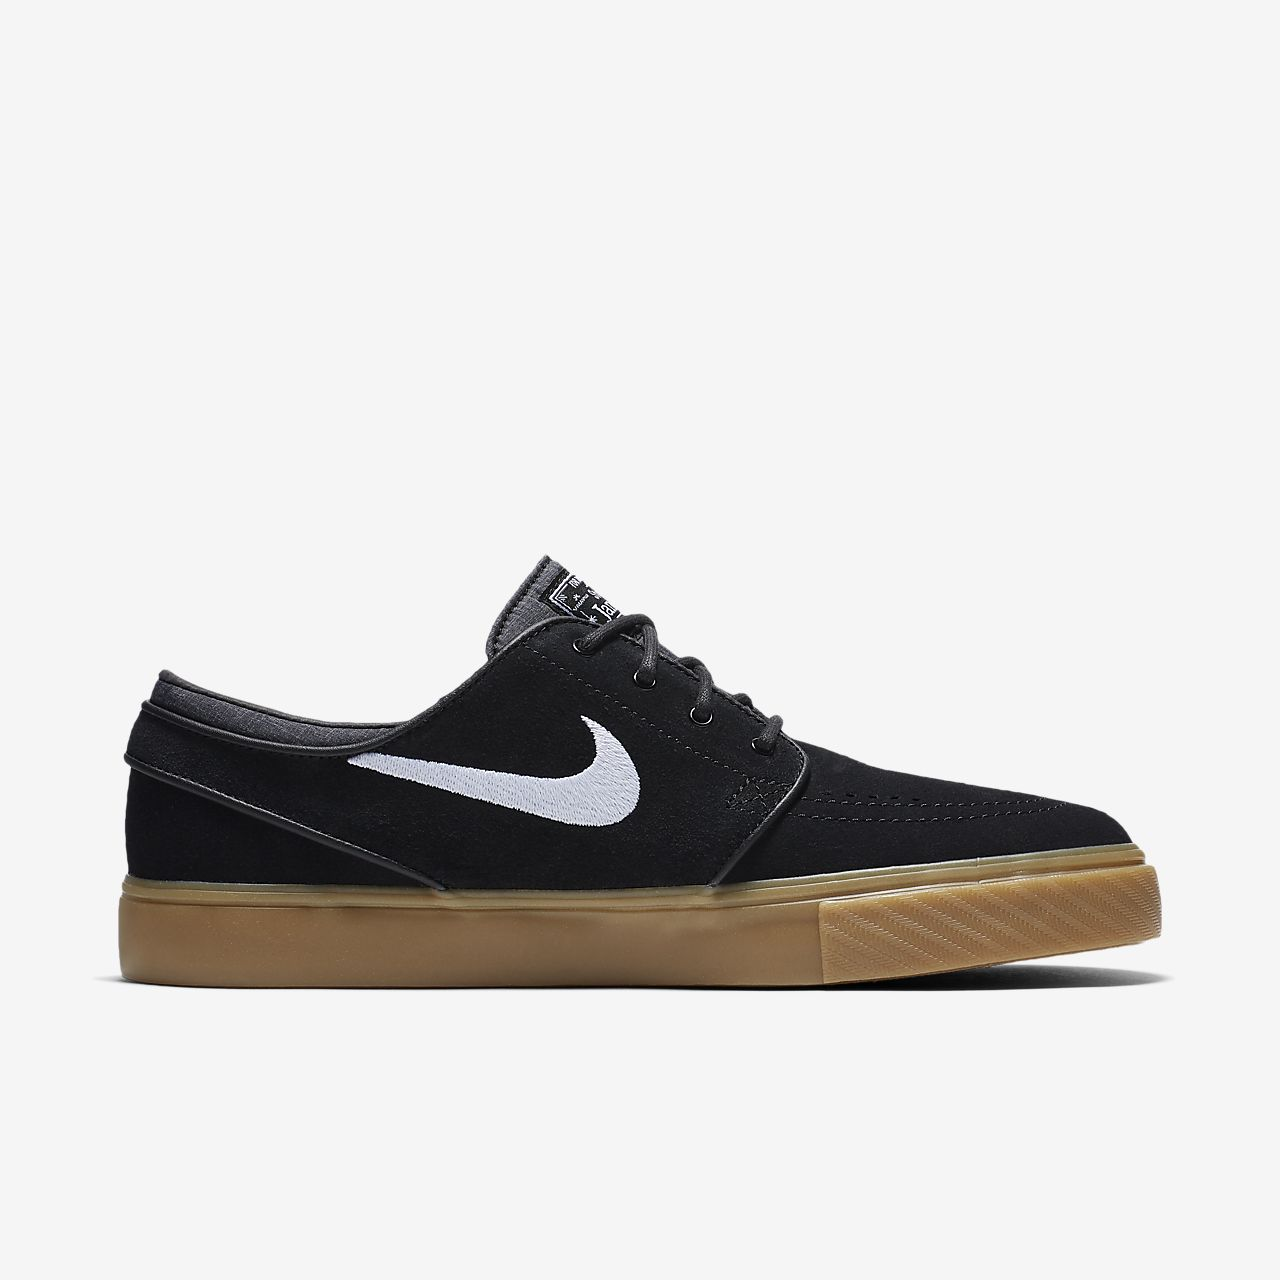 Gris Chaussures Nike Sb Collection Taille 45 Hommes 41hmSilf